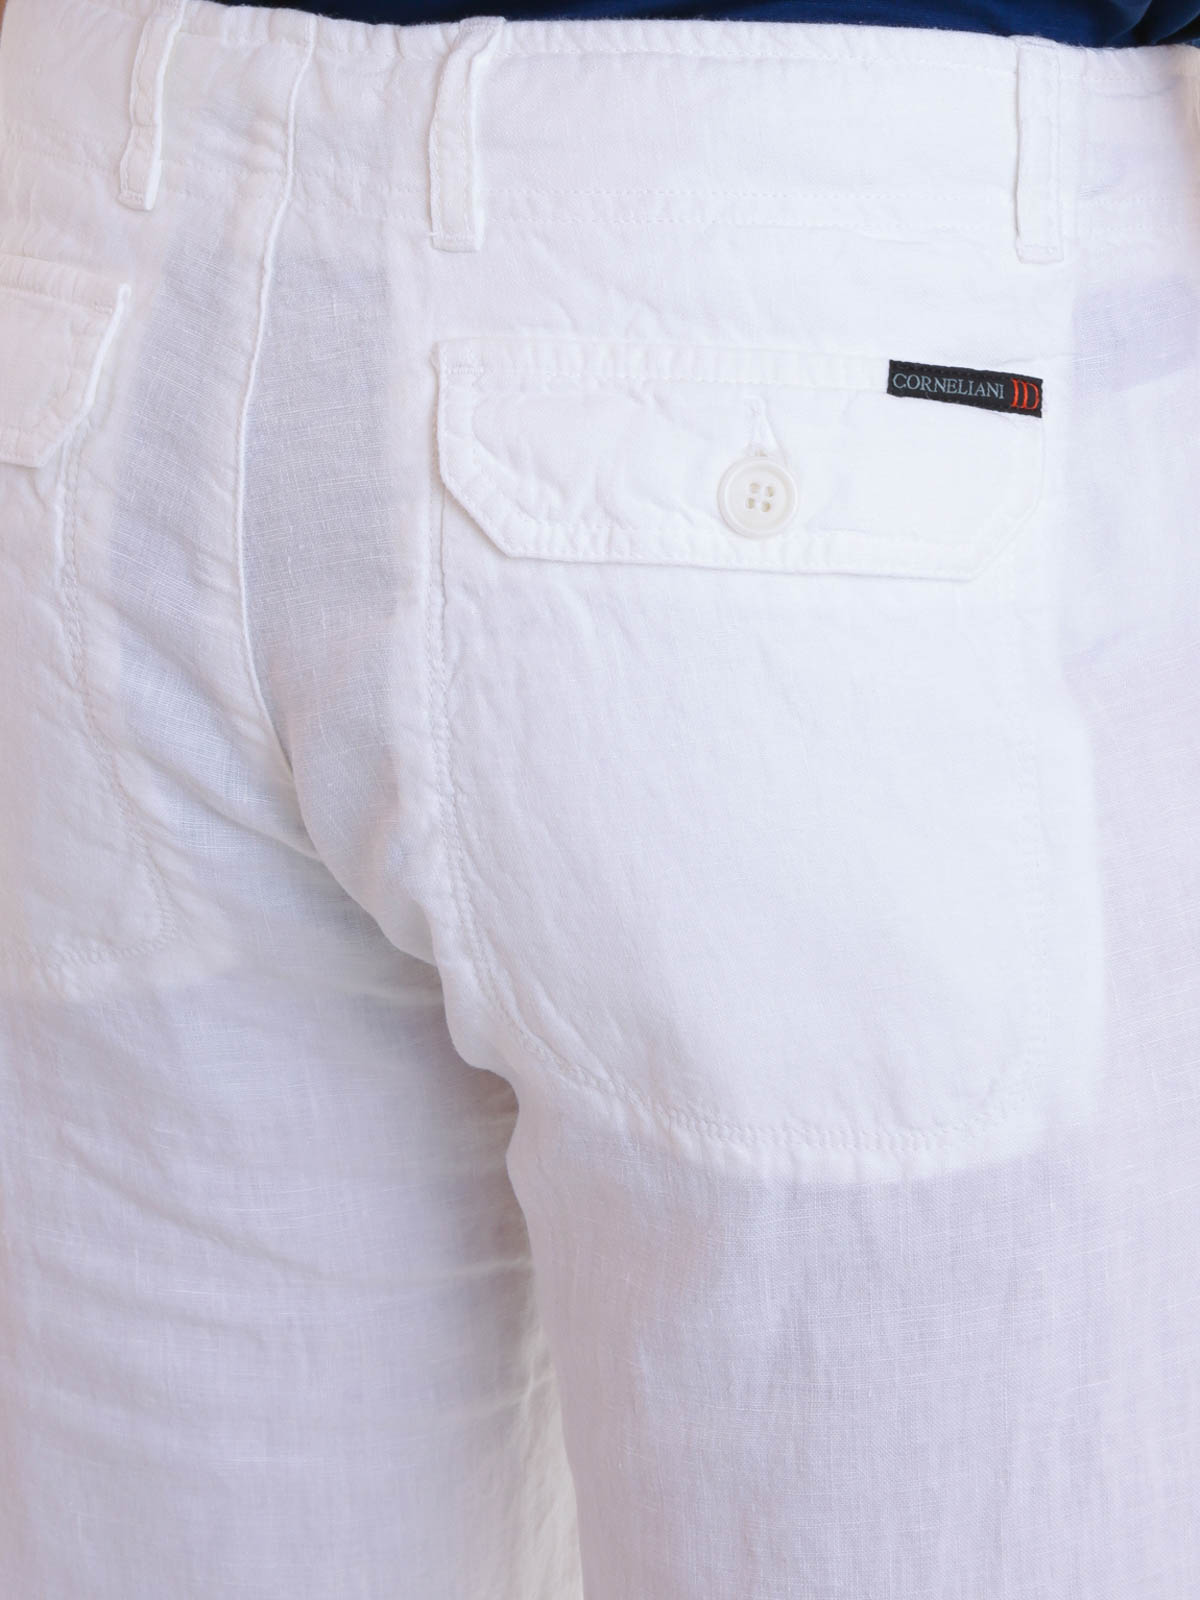 MISSY Linen Clothing - Shop our selection of pant at Vivid Linen. Let's Enjoy Today.